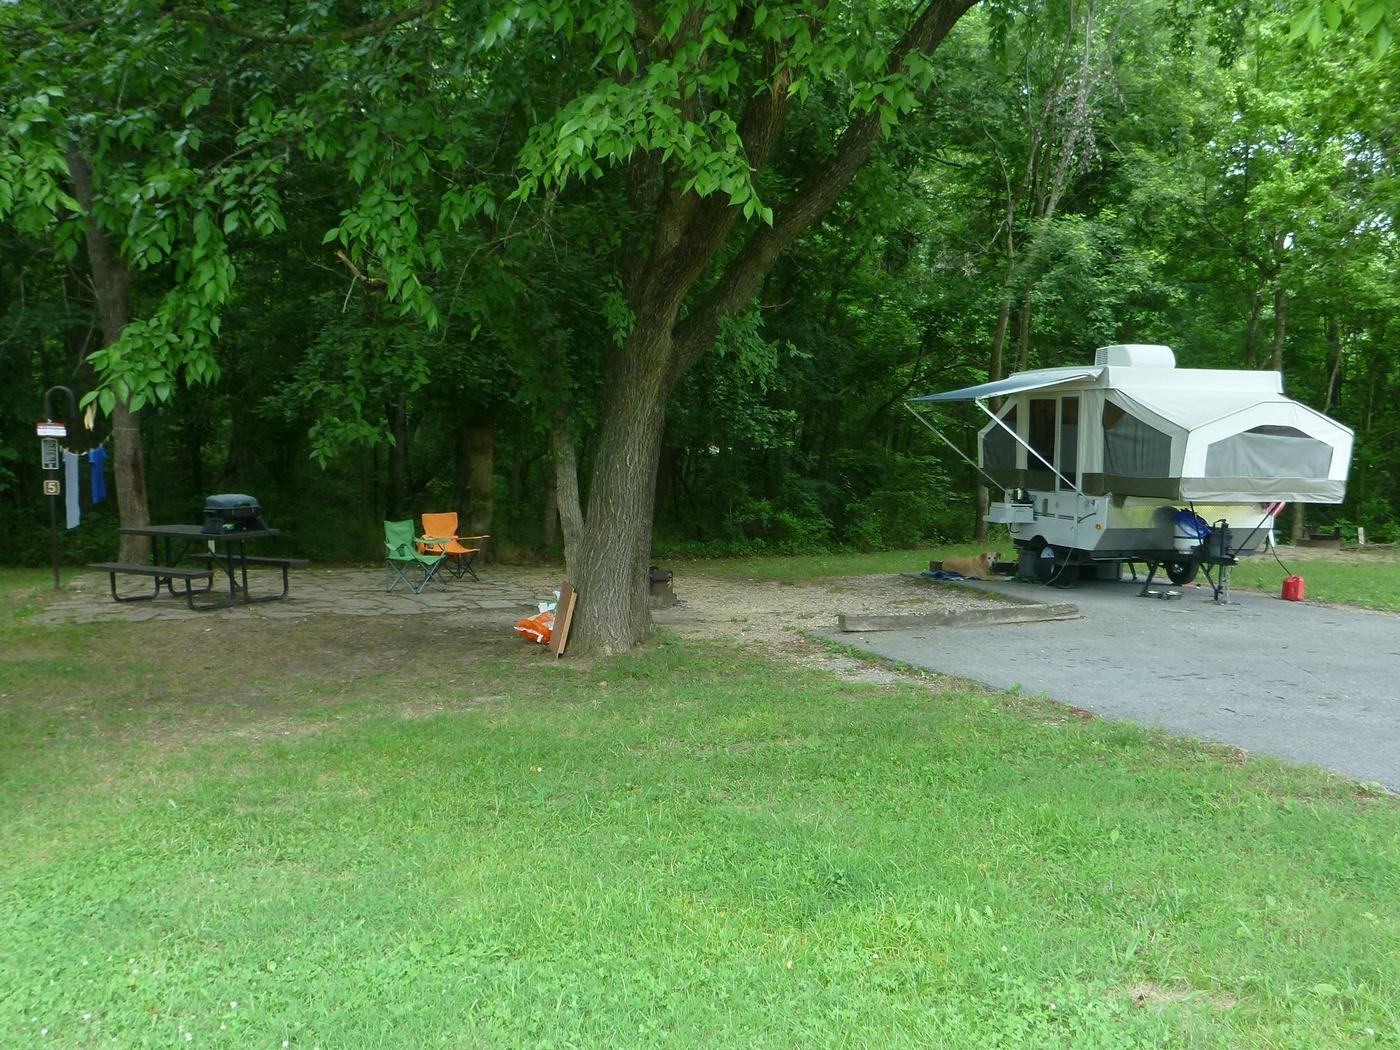 Tyler Bend Main Loop Ste #5Site #5, 54' back-in, no tent pad. Parking area is wide enough for RV and car to park side by side.